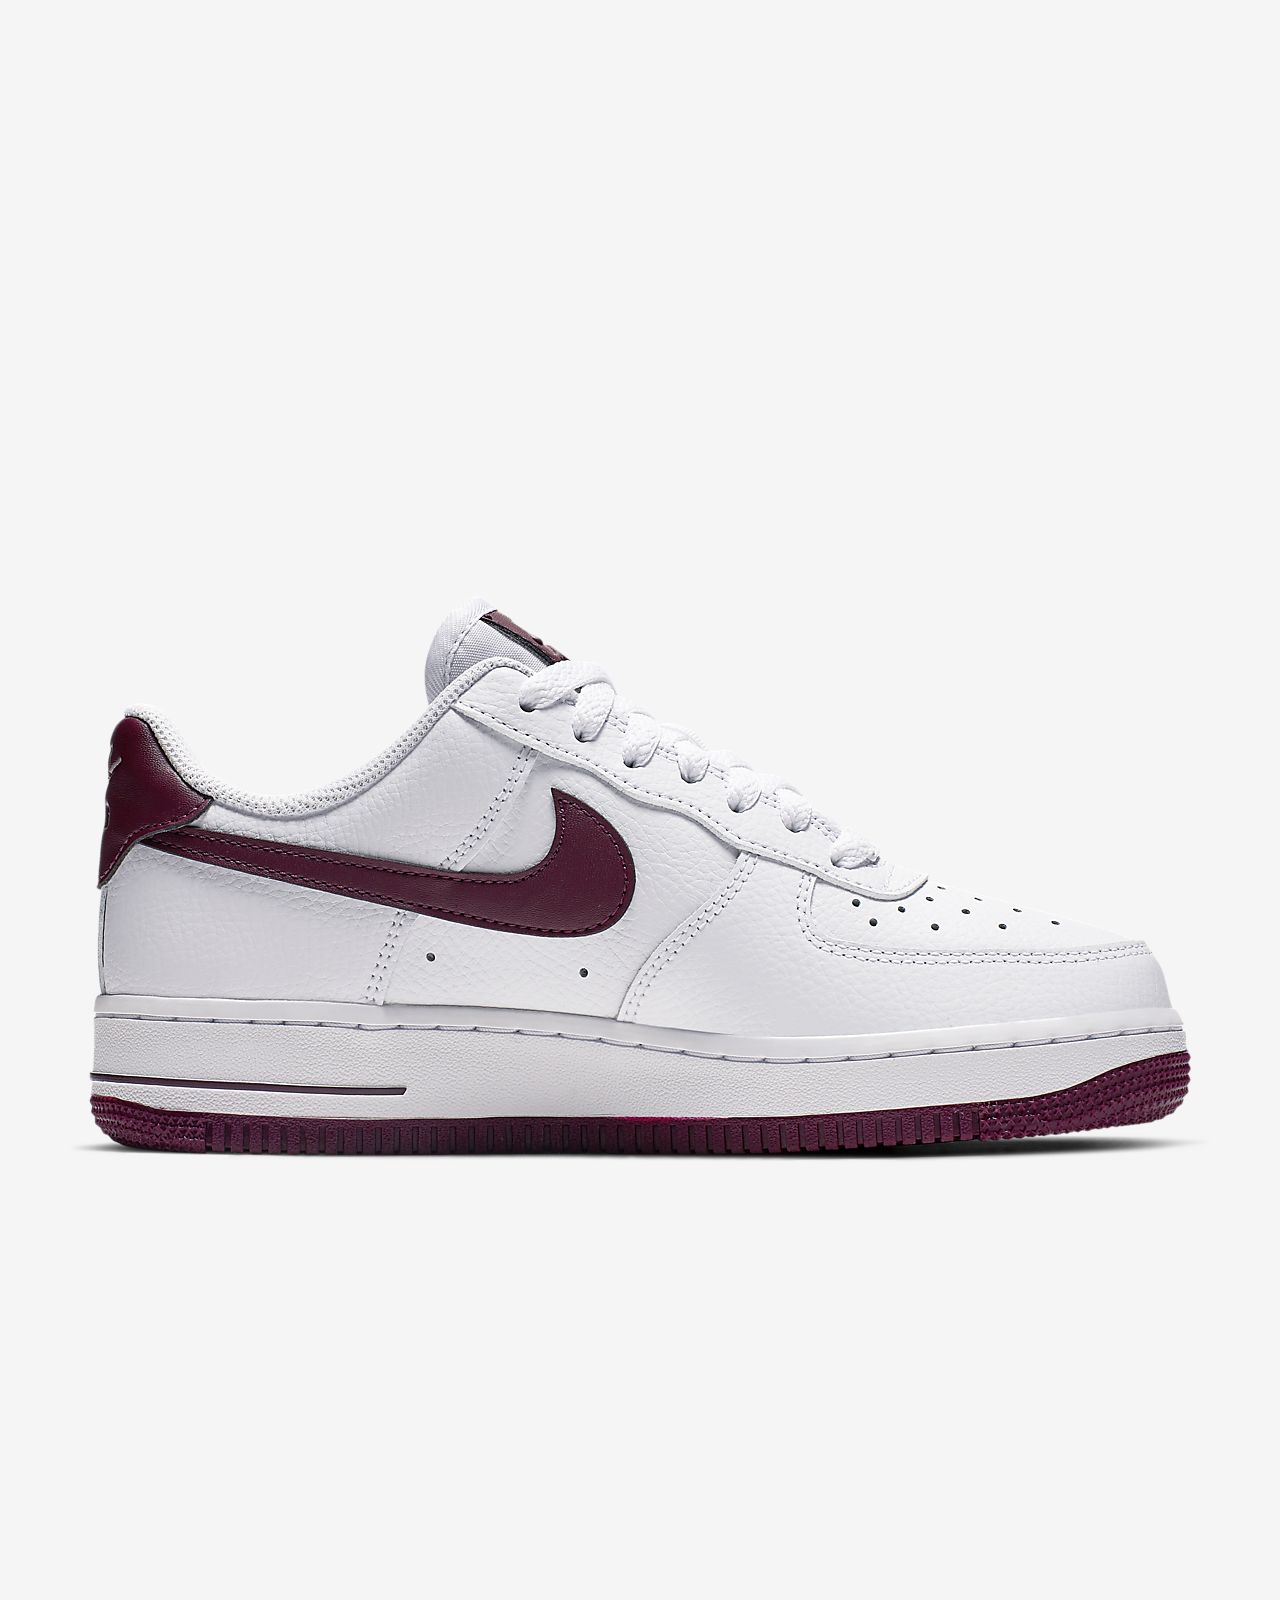 wholesale dealer 598dc 3fc15 ... Sko Nike Air Force 1  07 Patent för kvinnor